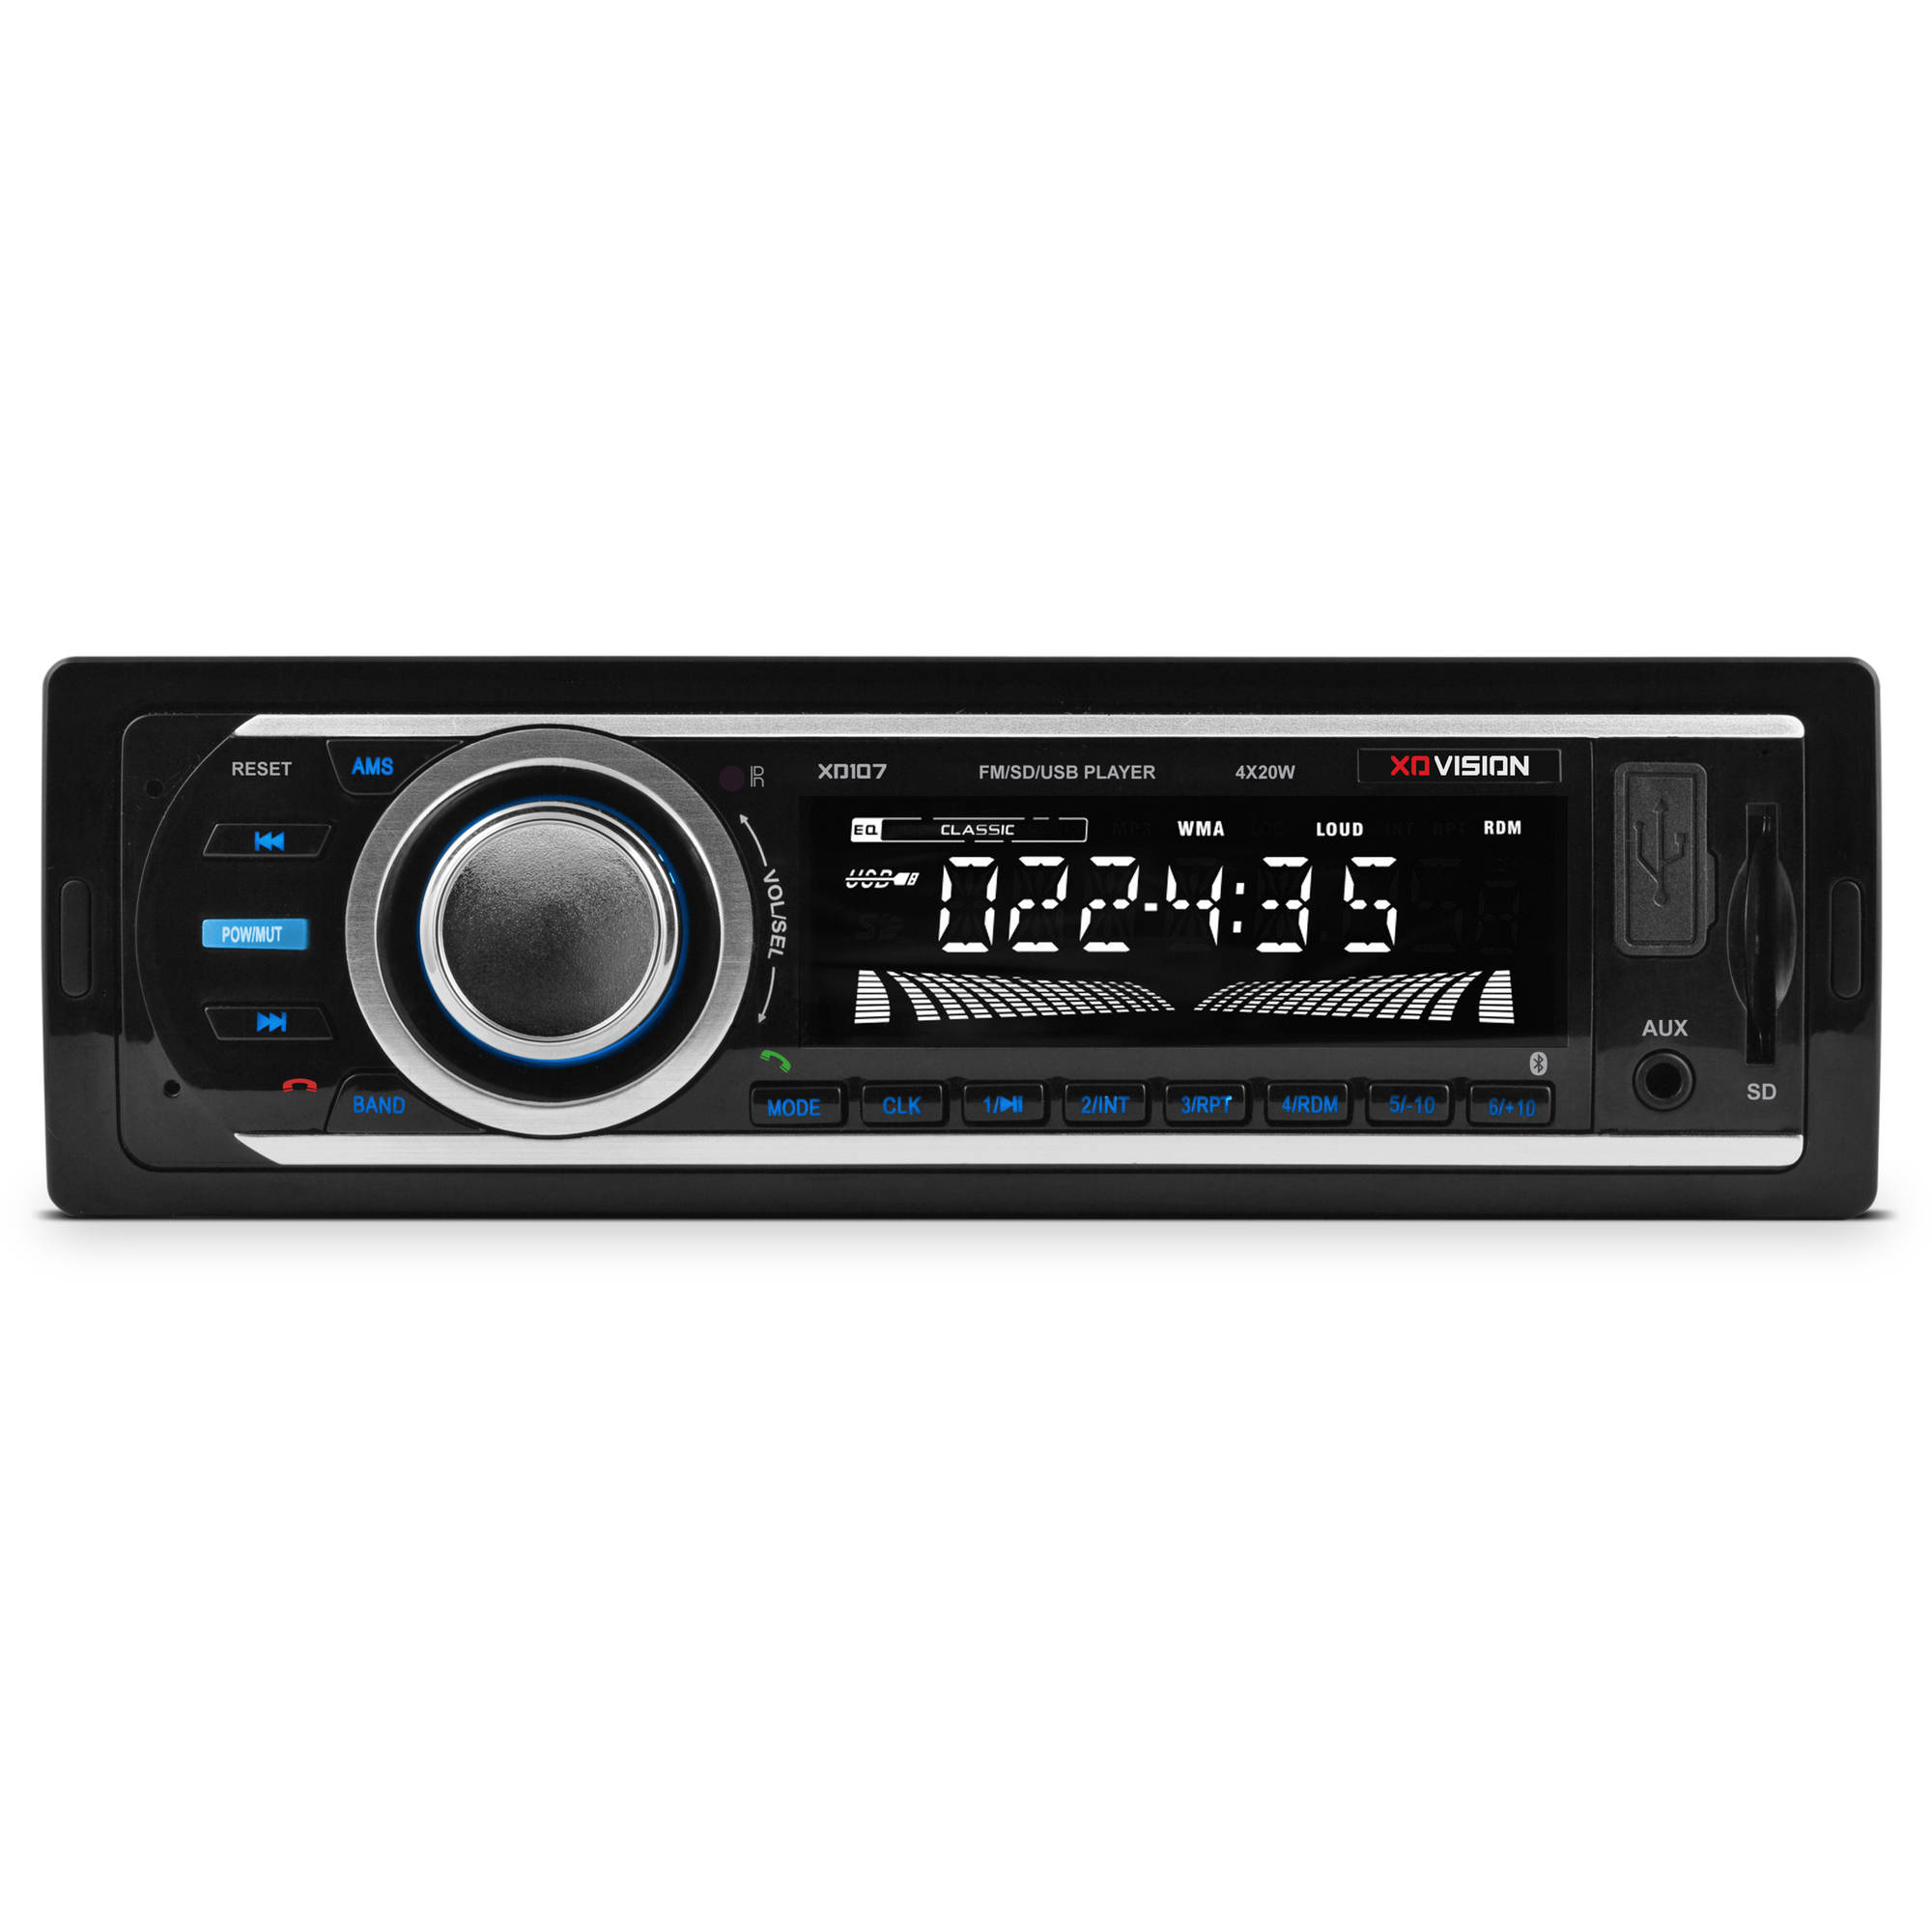 163d50e9 fab0 43d9 bc18 0a15c3289d3d_1.3778917bac34245adec16584bff5b2e5 xo vision xd107bt car stereo mp3 fm receiver with bluetooth best buy radio wire harness at panicattacktreatment.co